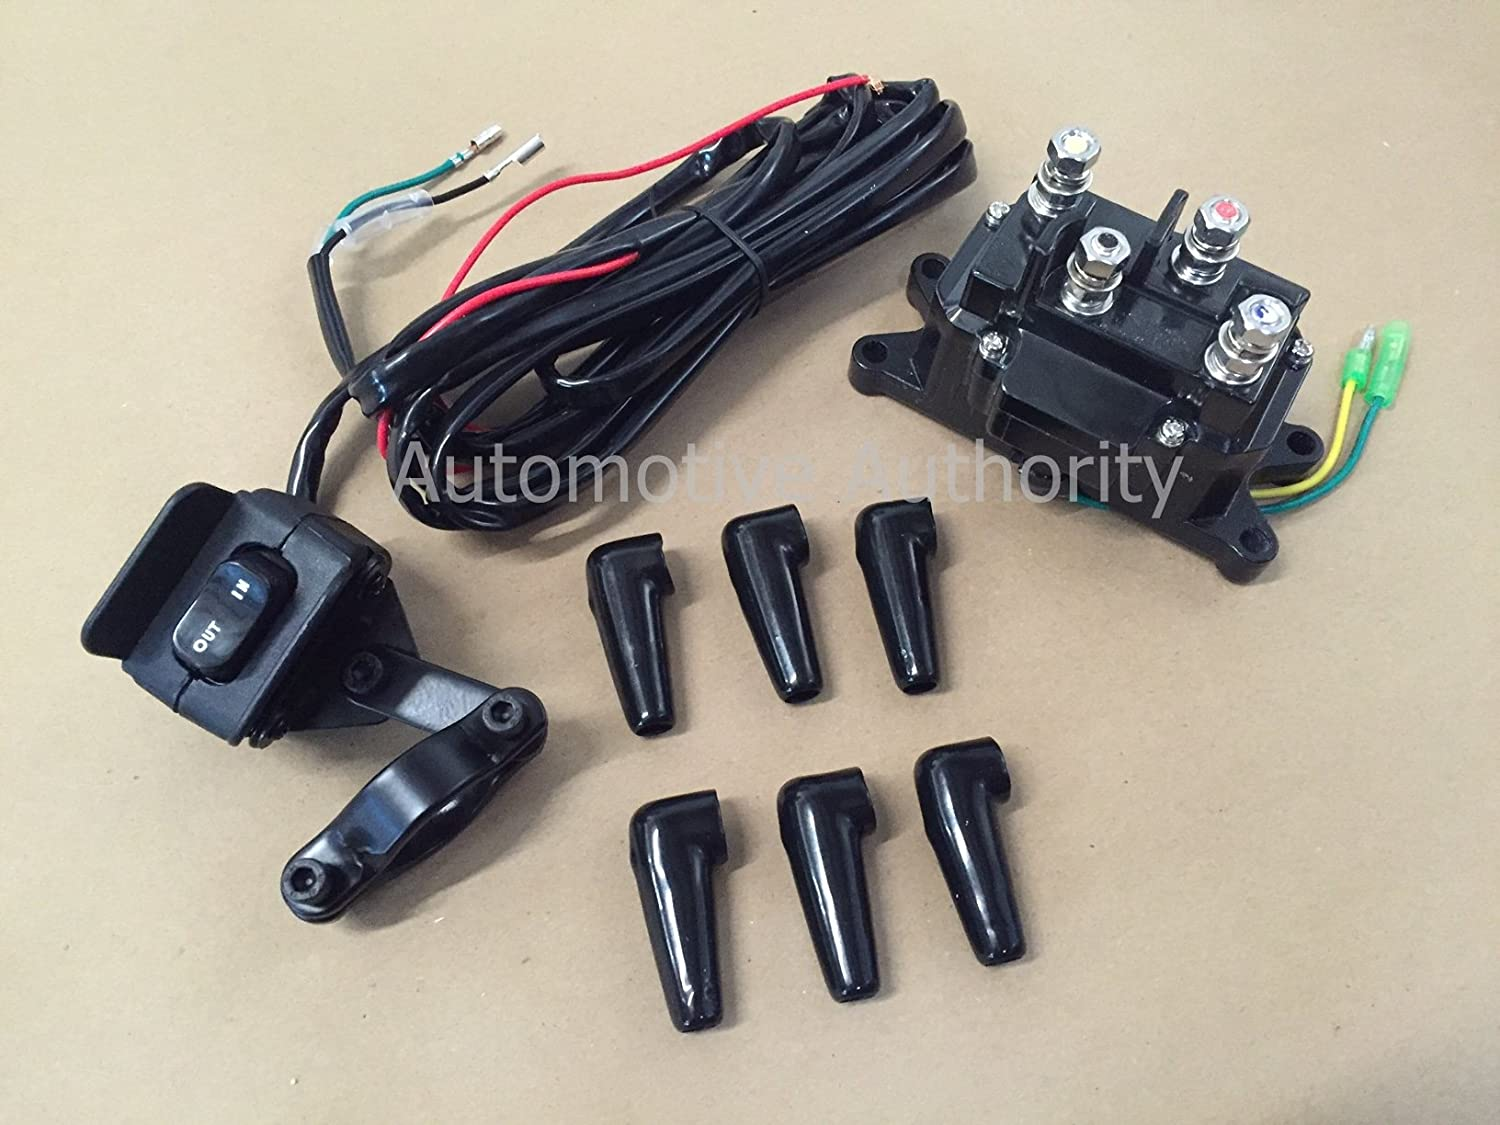 New 12V Contactor /& Winch COMBO Solenoid Relay Rocker Thumb Switch For ATV UTV